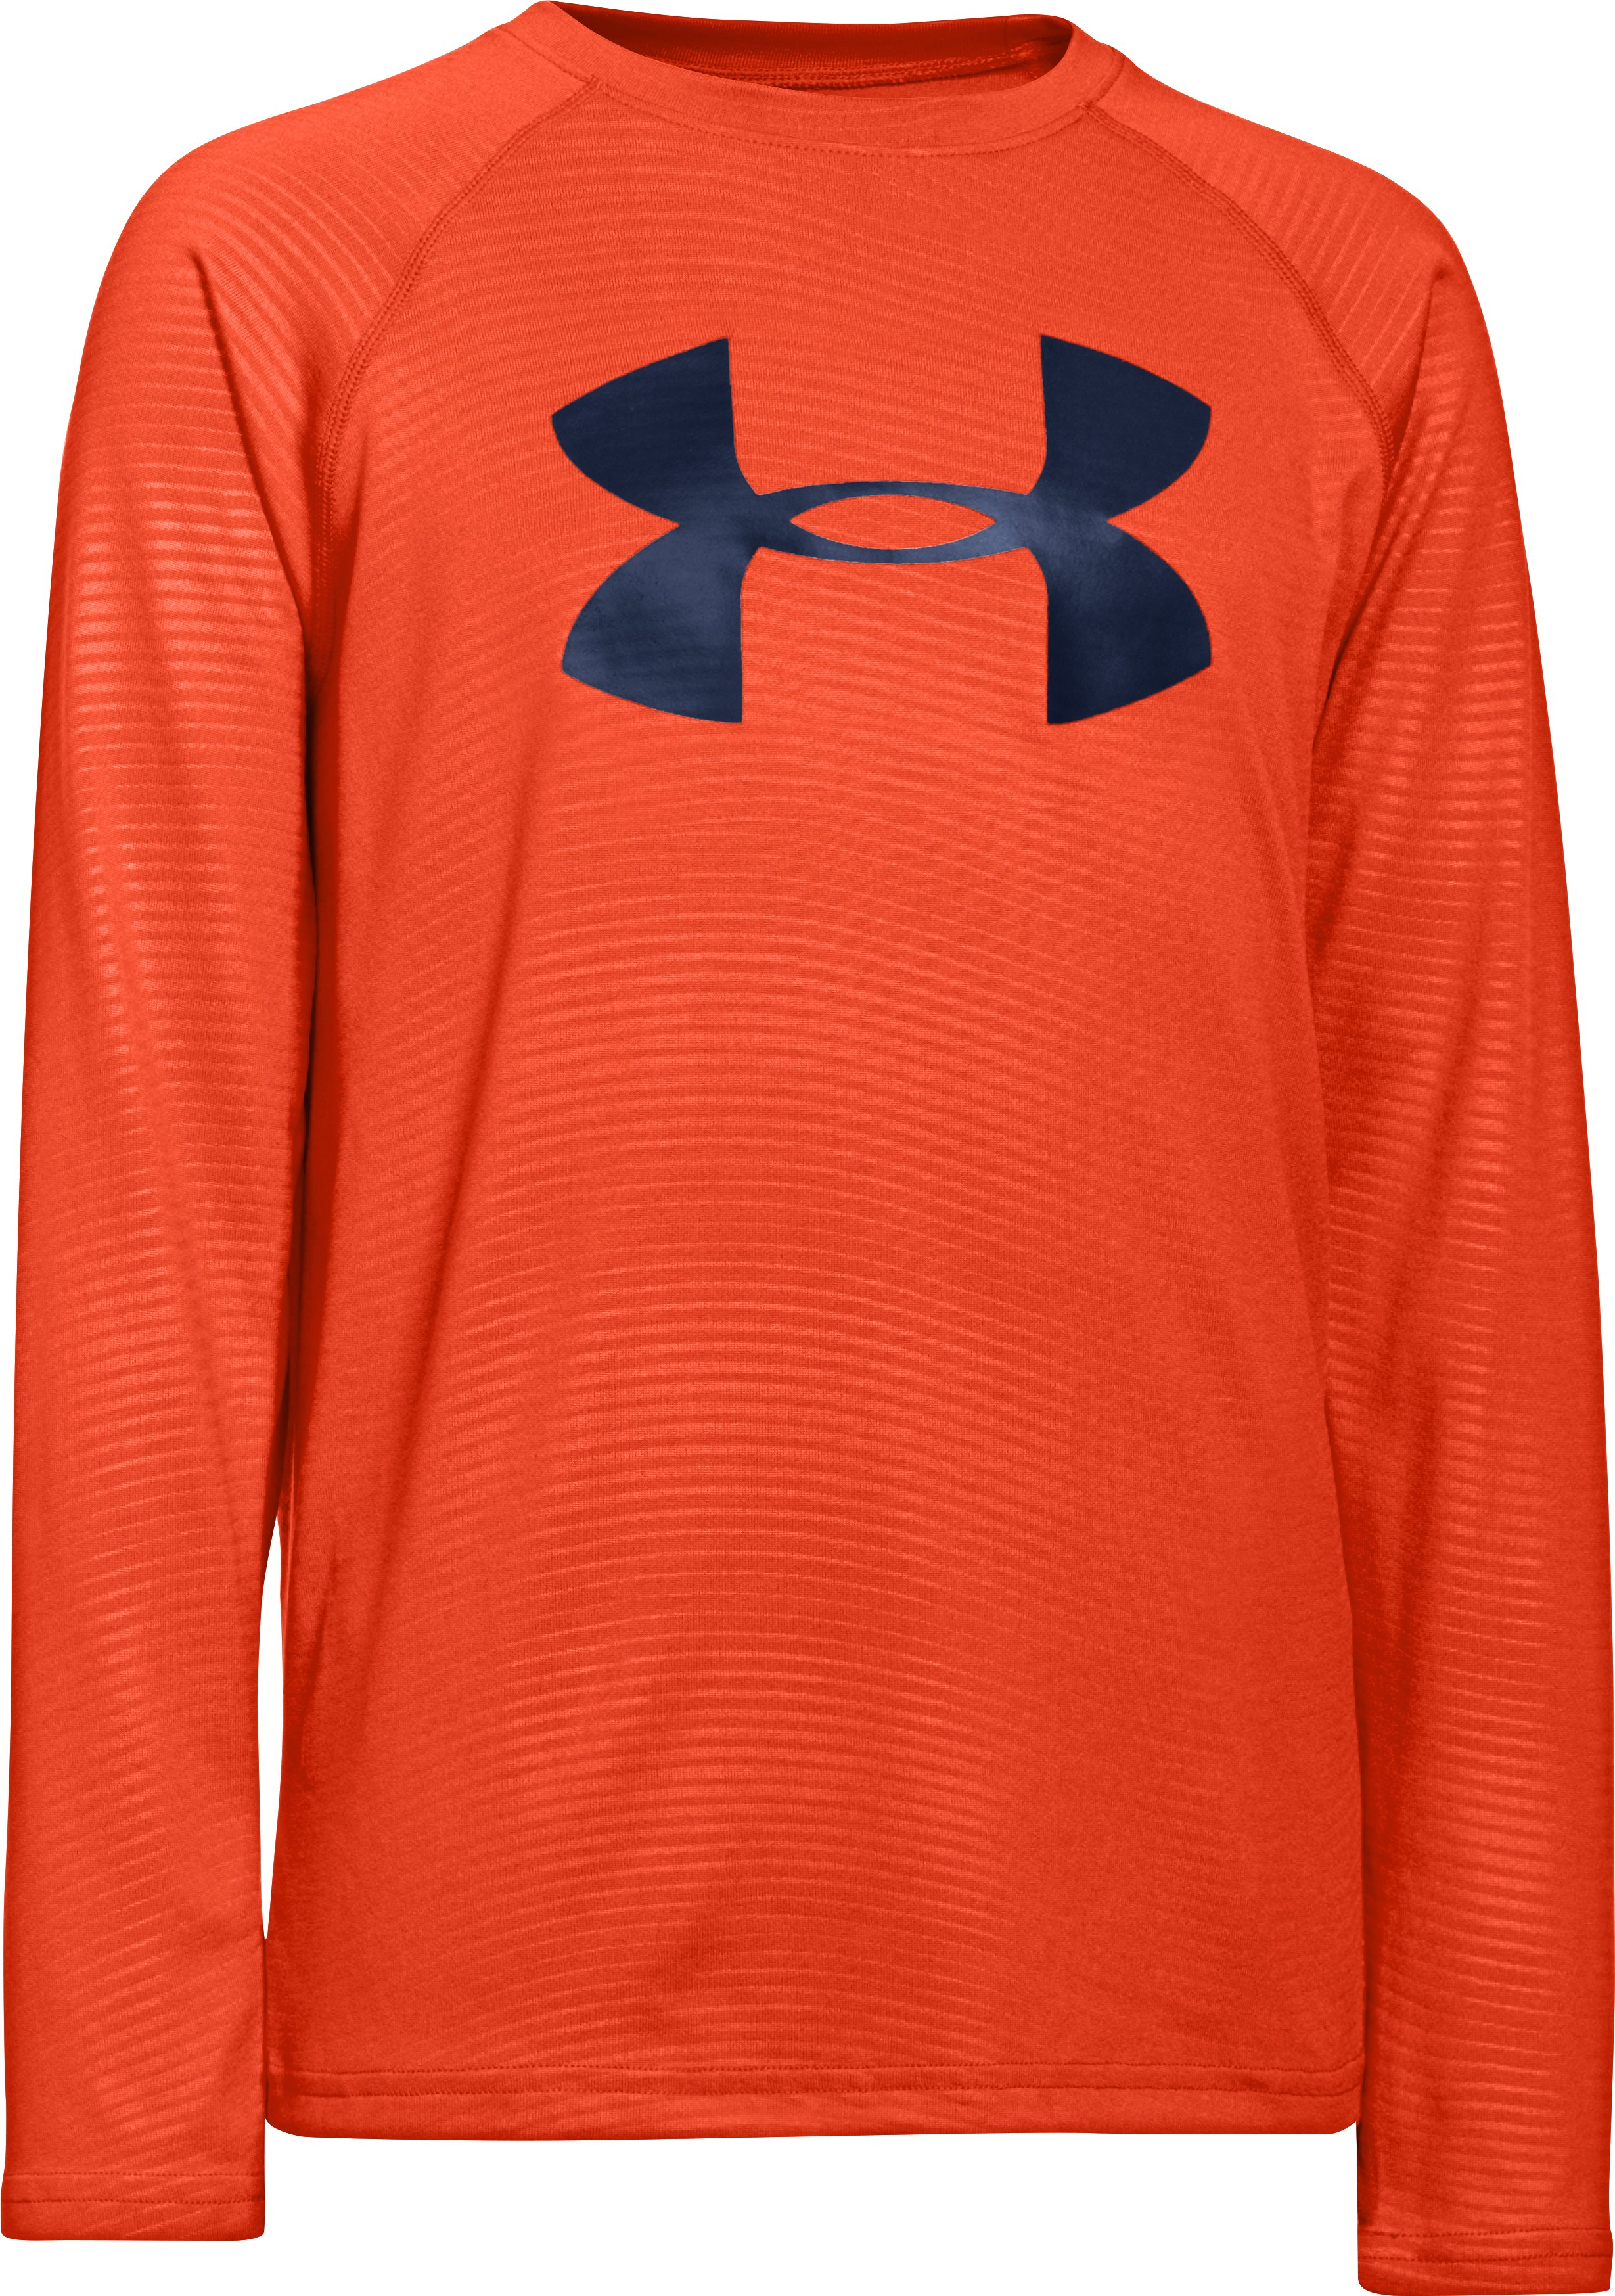 Boys' UA Tech™ Big Logo Printed Long Sleeve T-Shirt, Dark Orange, zoomed image